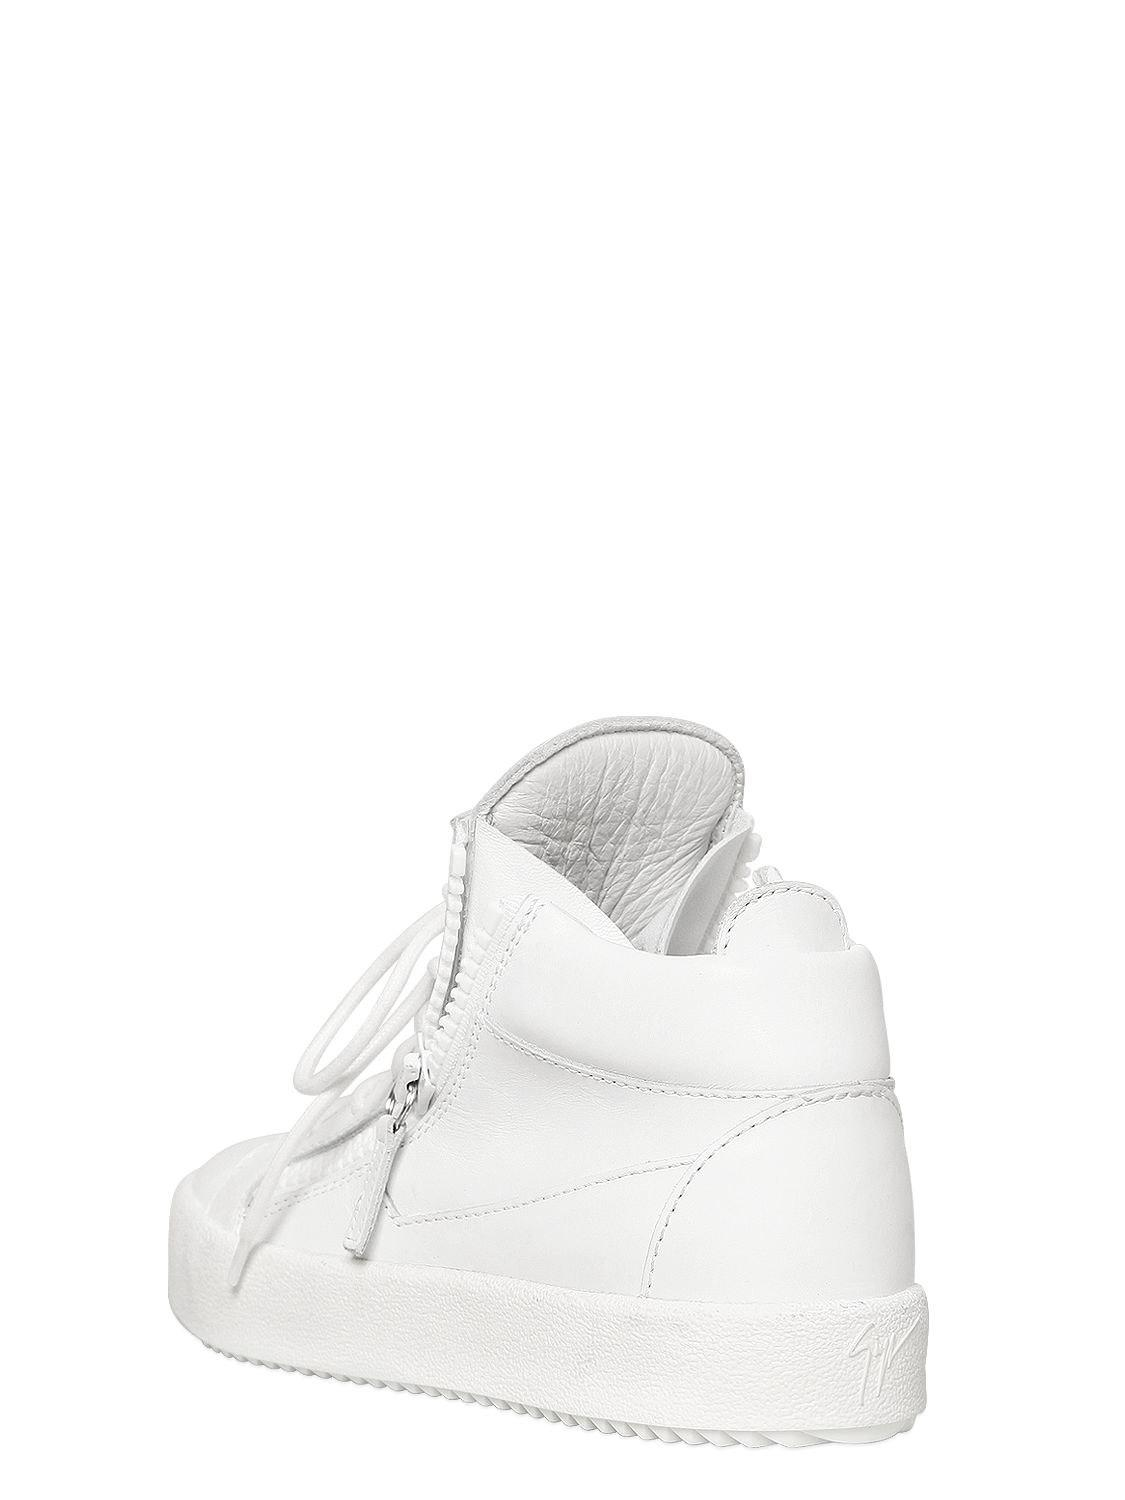 Giuseppe Zanotti 20mm Leather Mid Top Sneakers in White